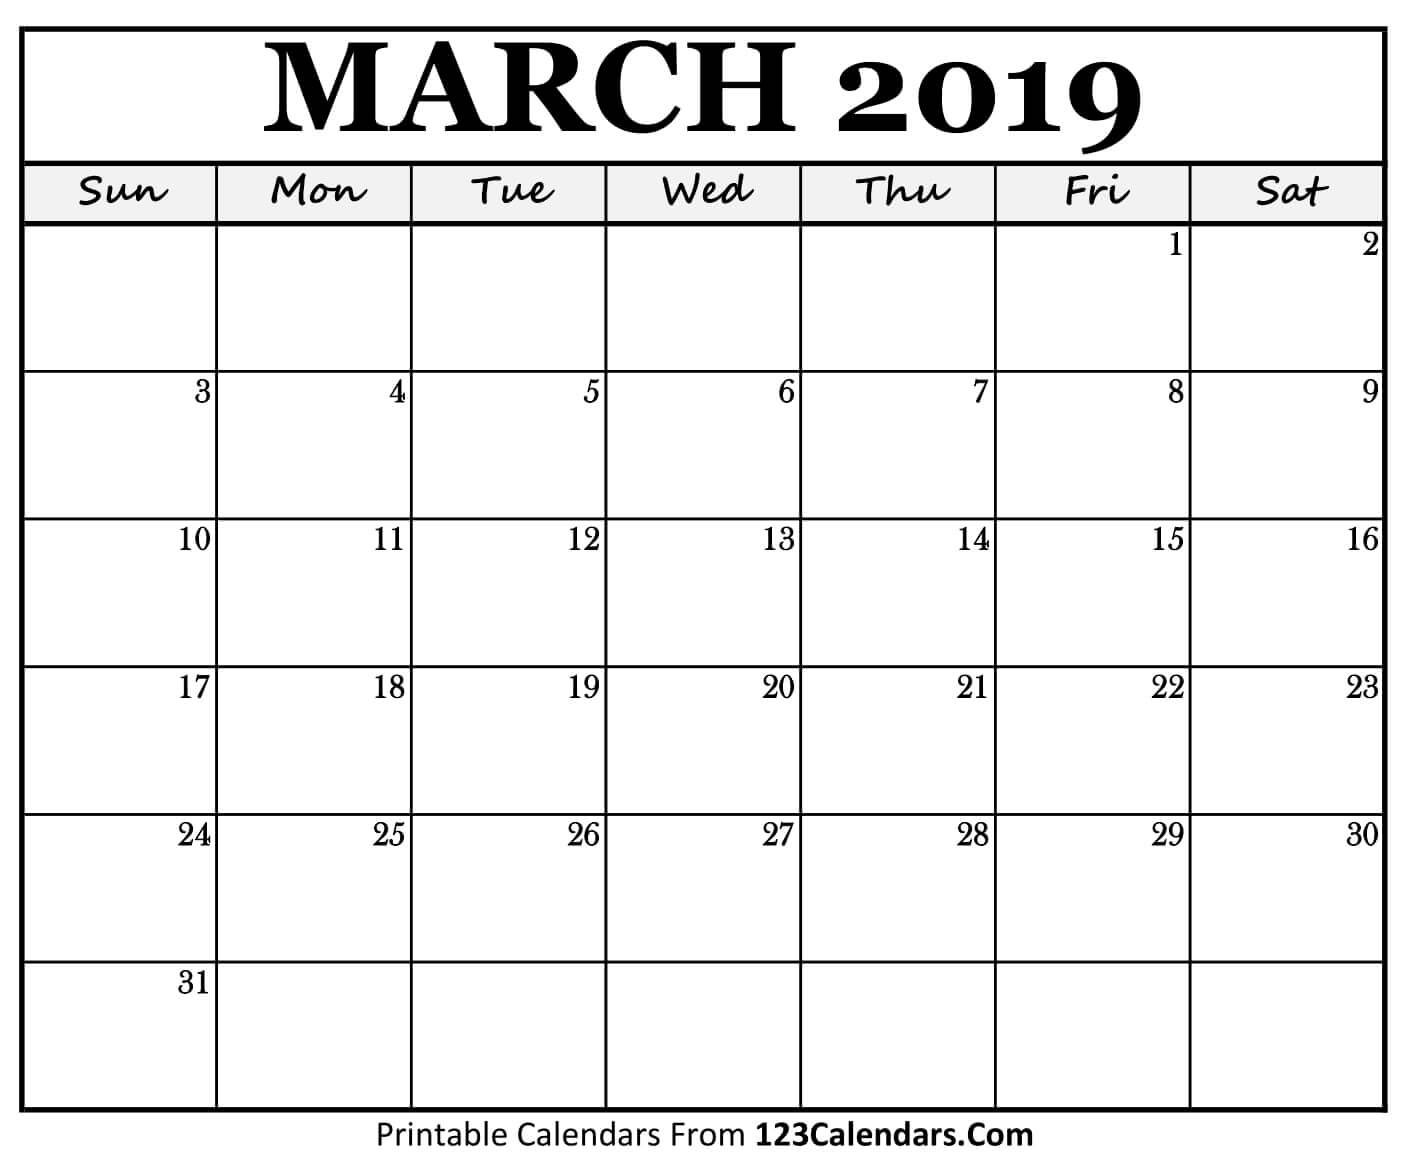 Printable March 2019 Calendar Templates - 123Calendars A Calendar For March 2019